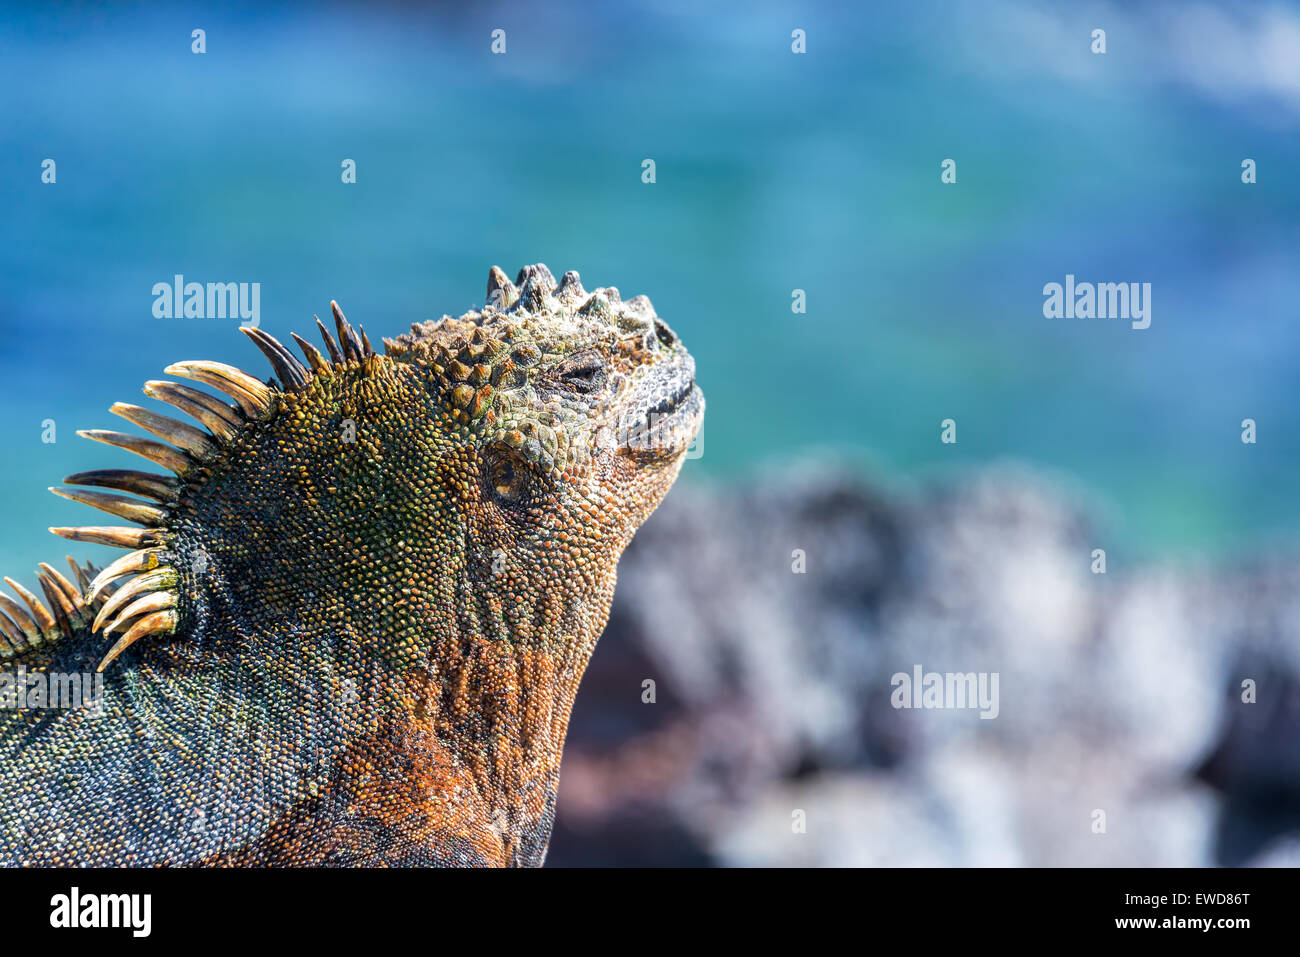 Face of a Marine Iguana relaxing in the sun with a blue background on Fernandinda Island in the Galapagos Islands - Stock Image